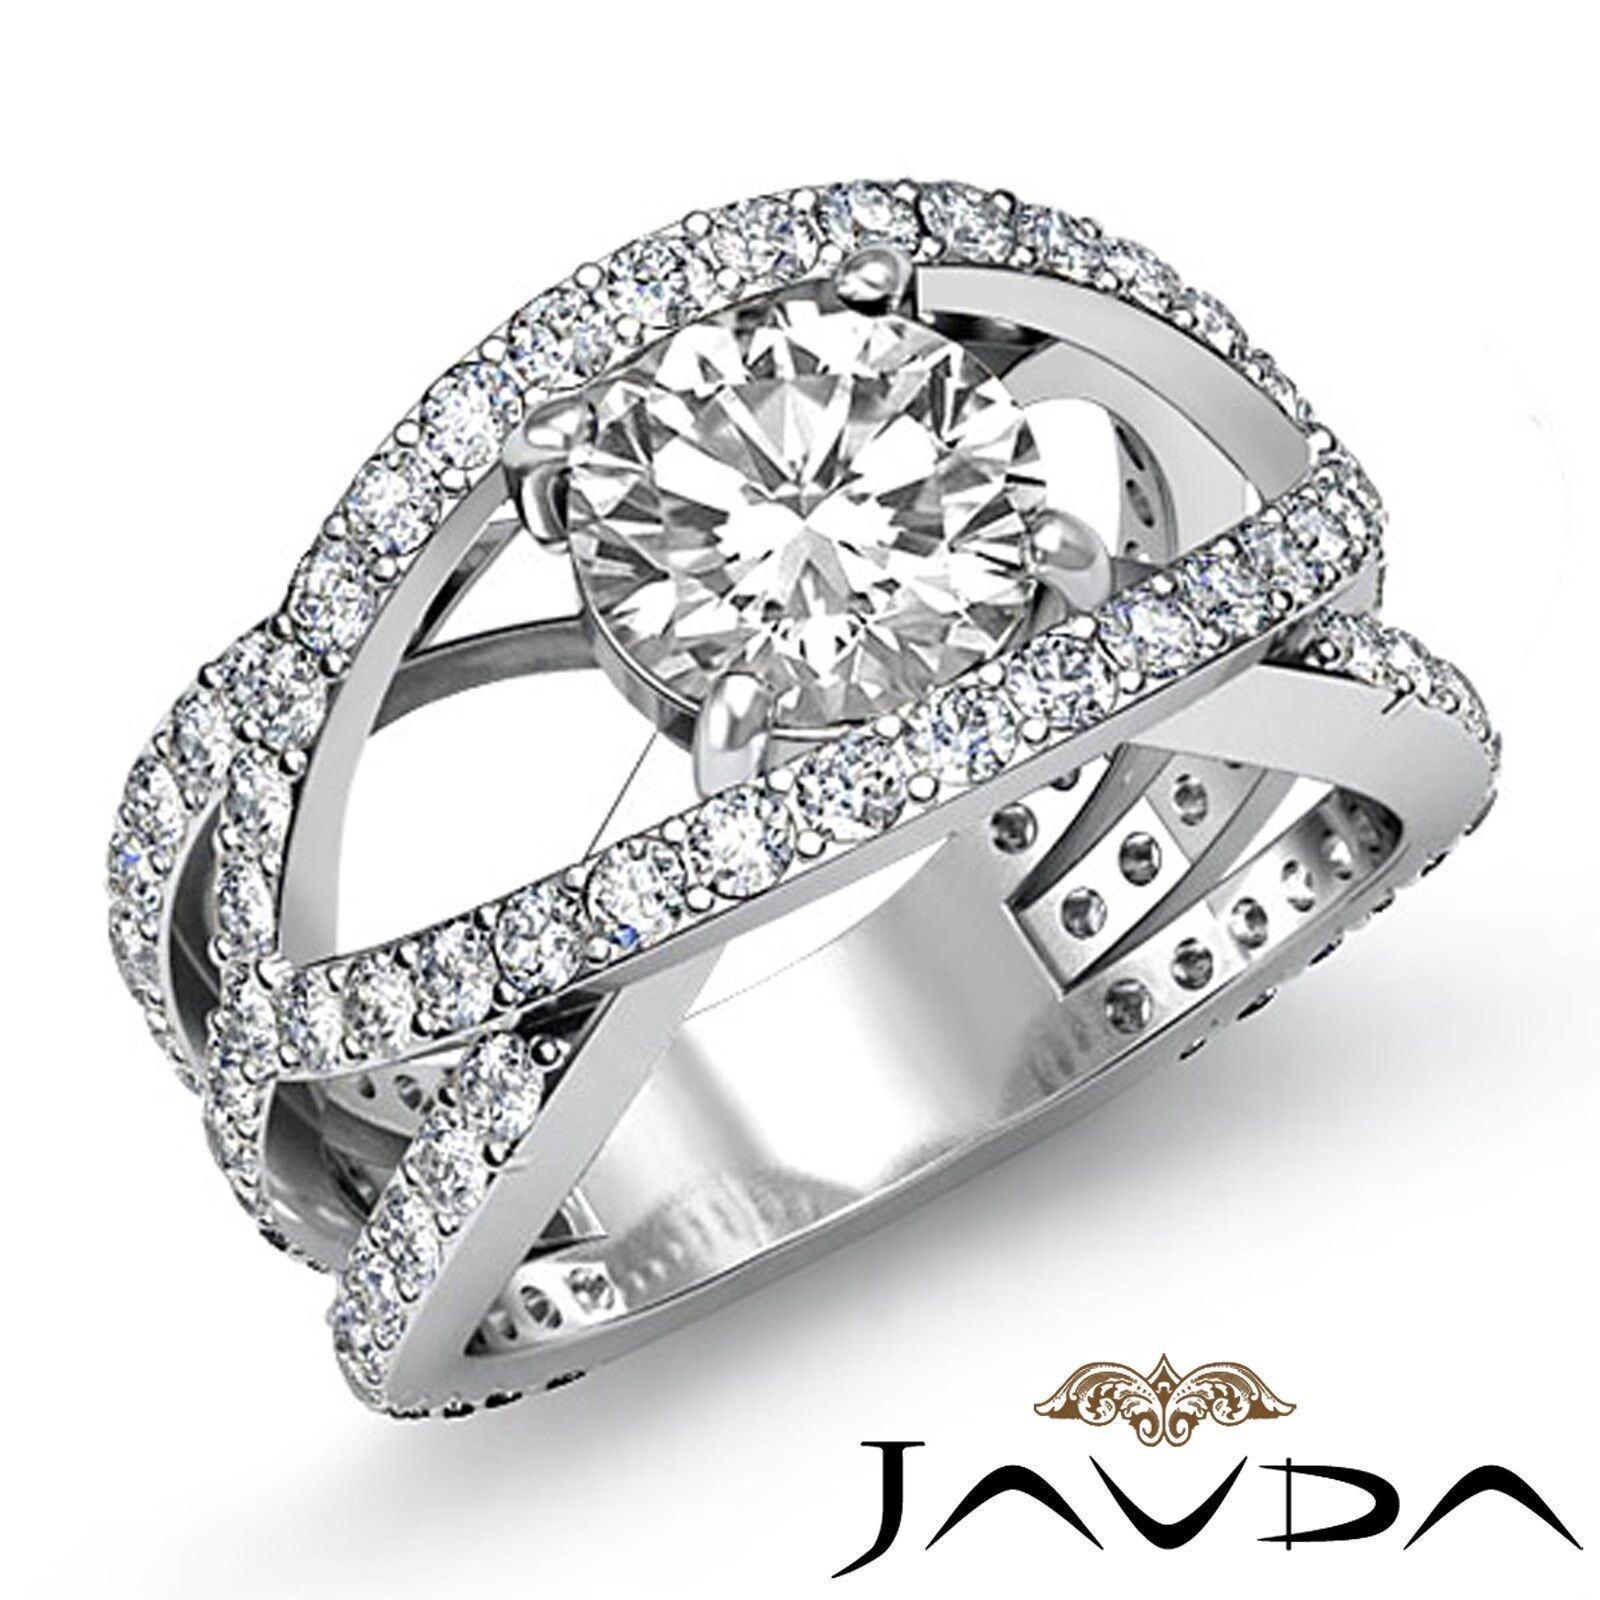 Halo Pave Set Round Diamond Engagement Interlocking Design Ring GIA I VS2 2.7Ct